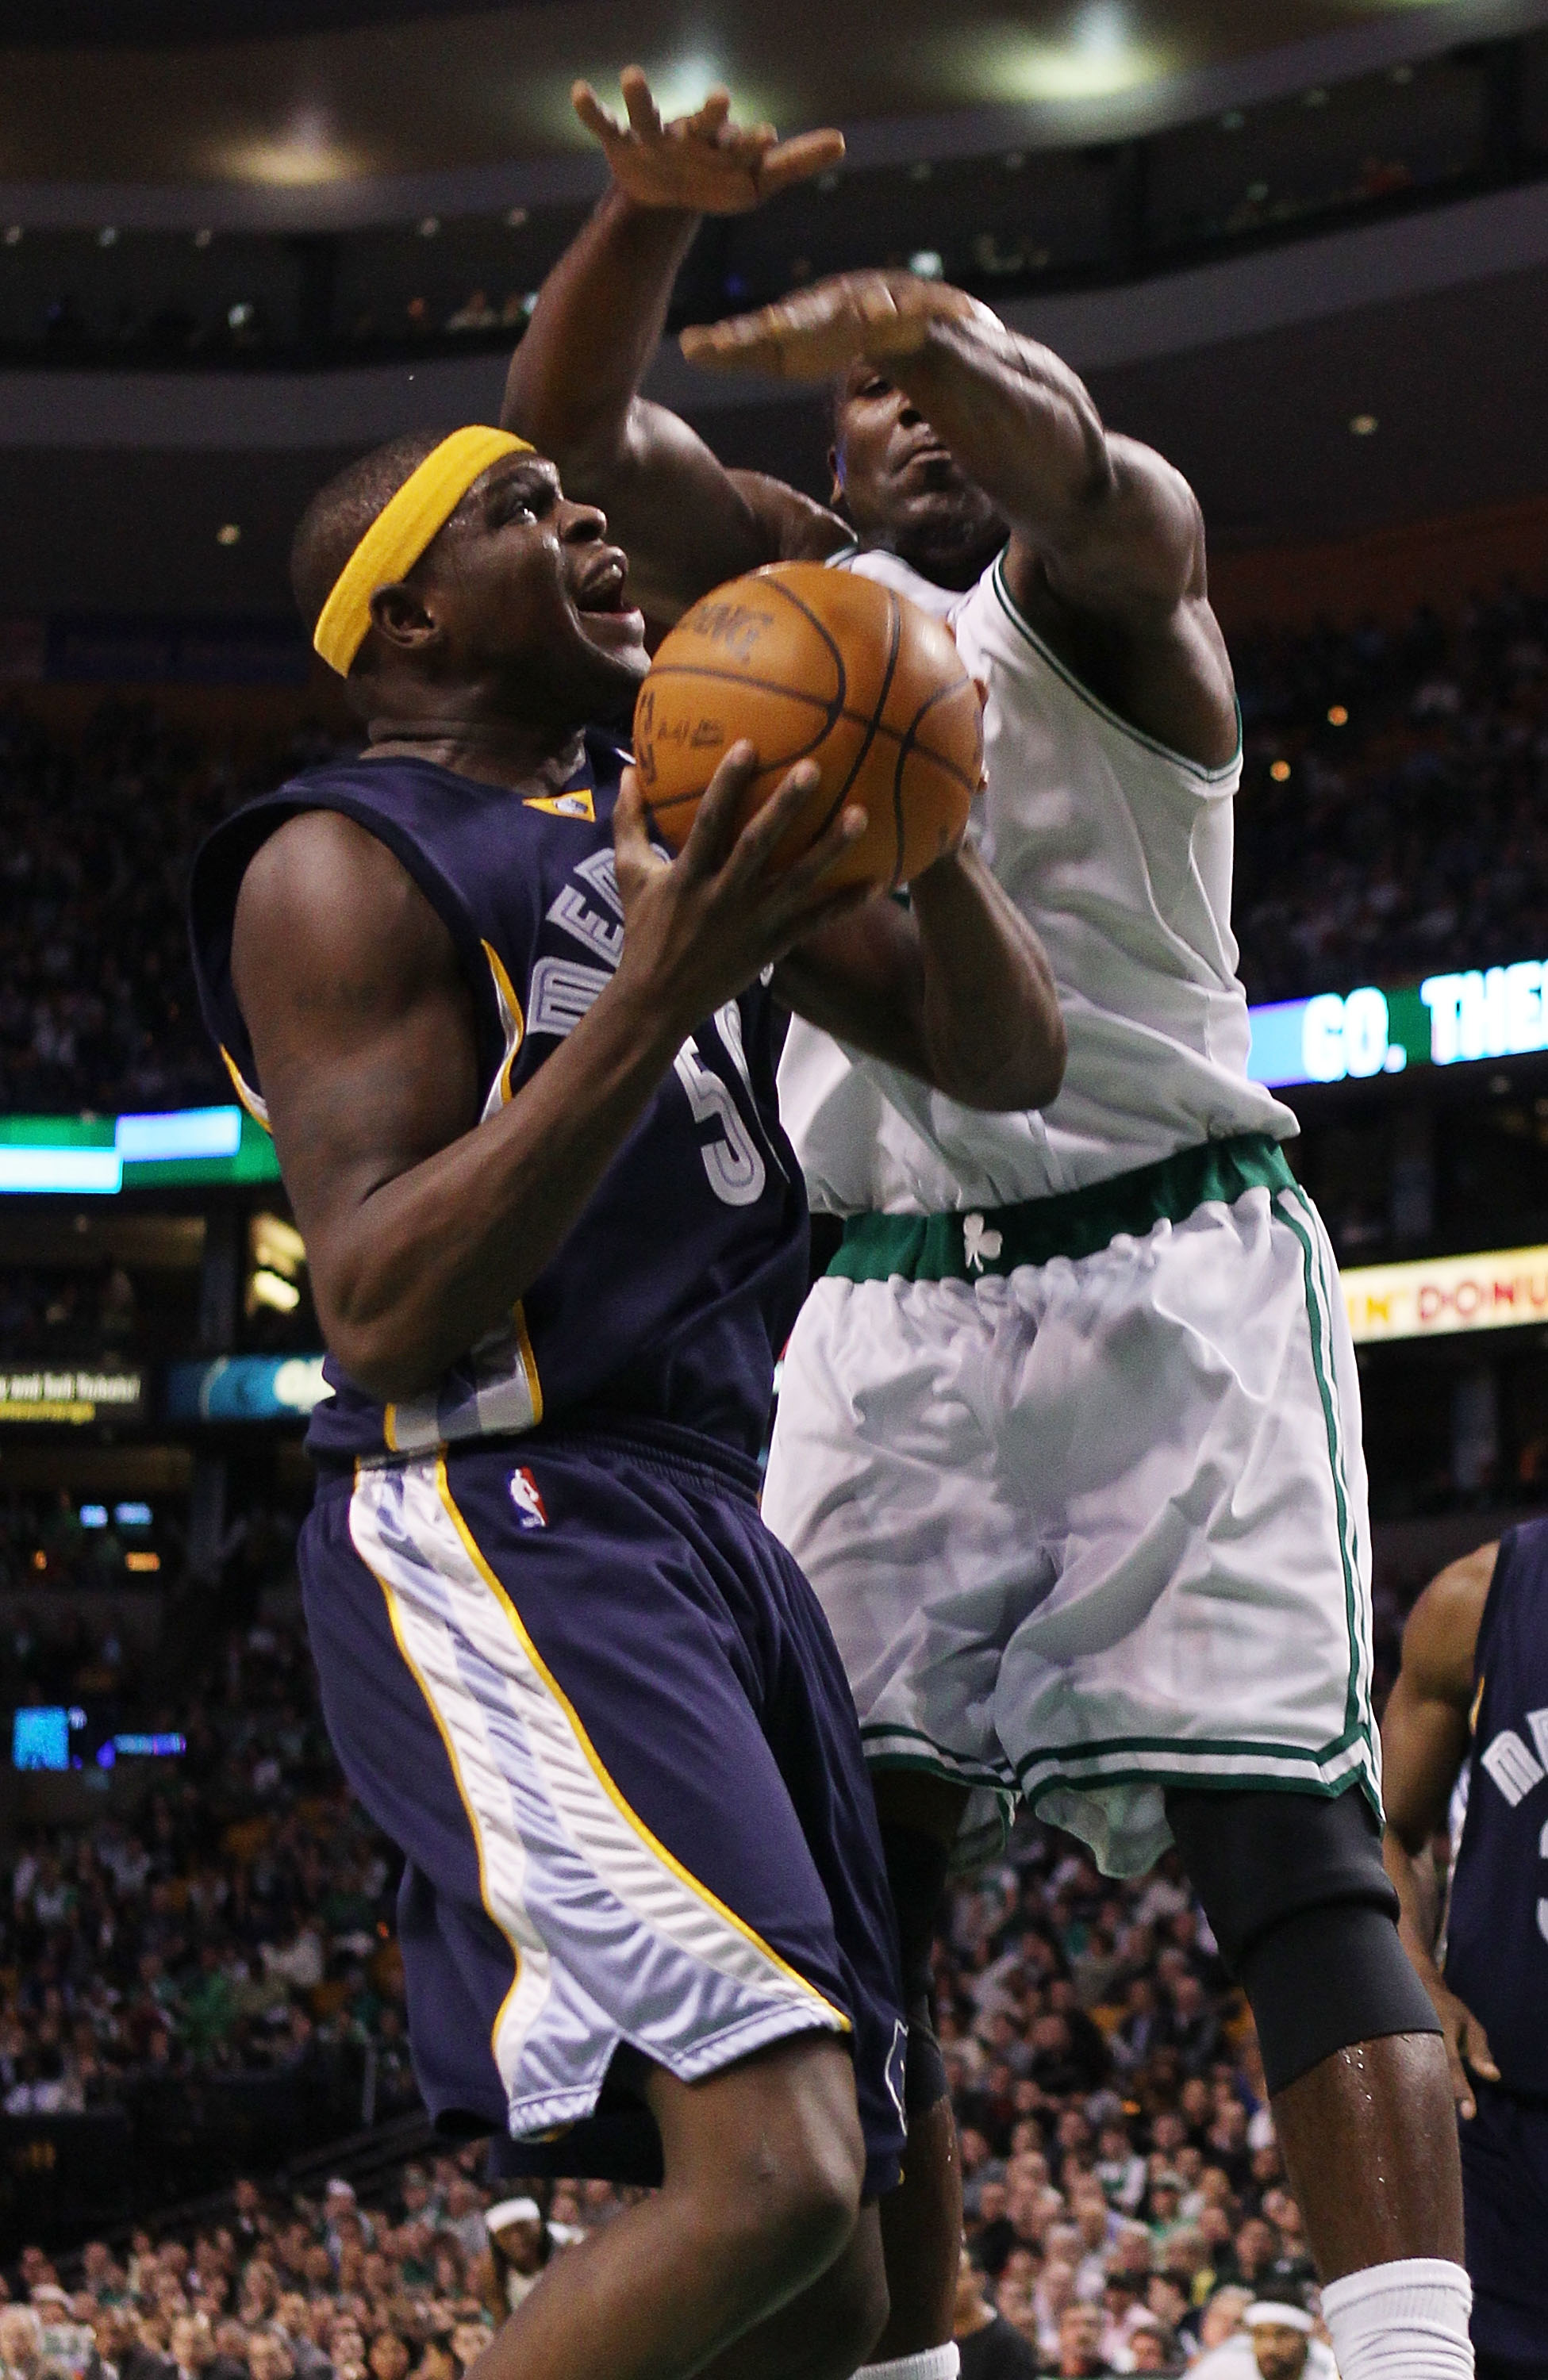 BOSTON - MARCH 10:  Zach Randolph #50 of the Memphis Grizzlies heads for the net as Kendrick Perkins #43 of the Boston Celtics defends on March 10, 2010 at the TD Garden in Boston, Massachusetts.  NOTE TO USER: User expressly acknowledges and agrees that,